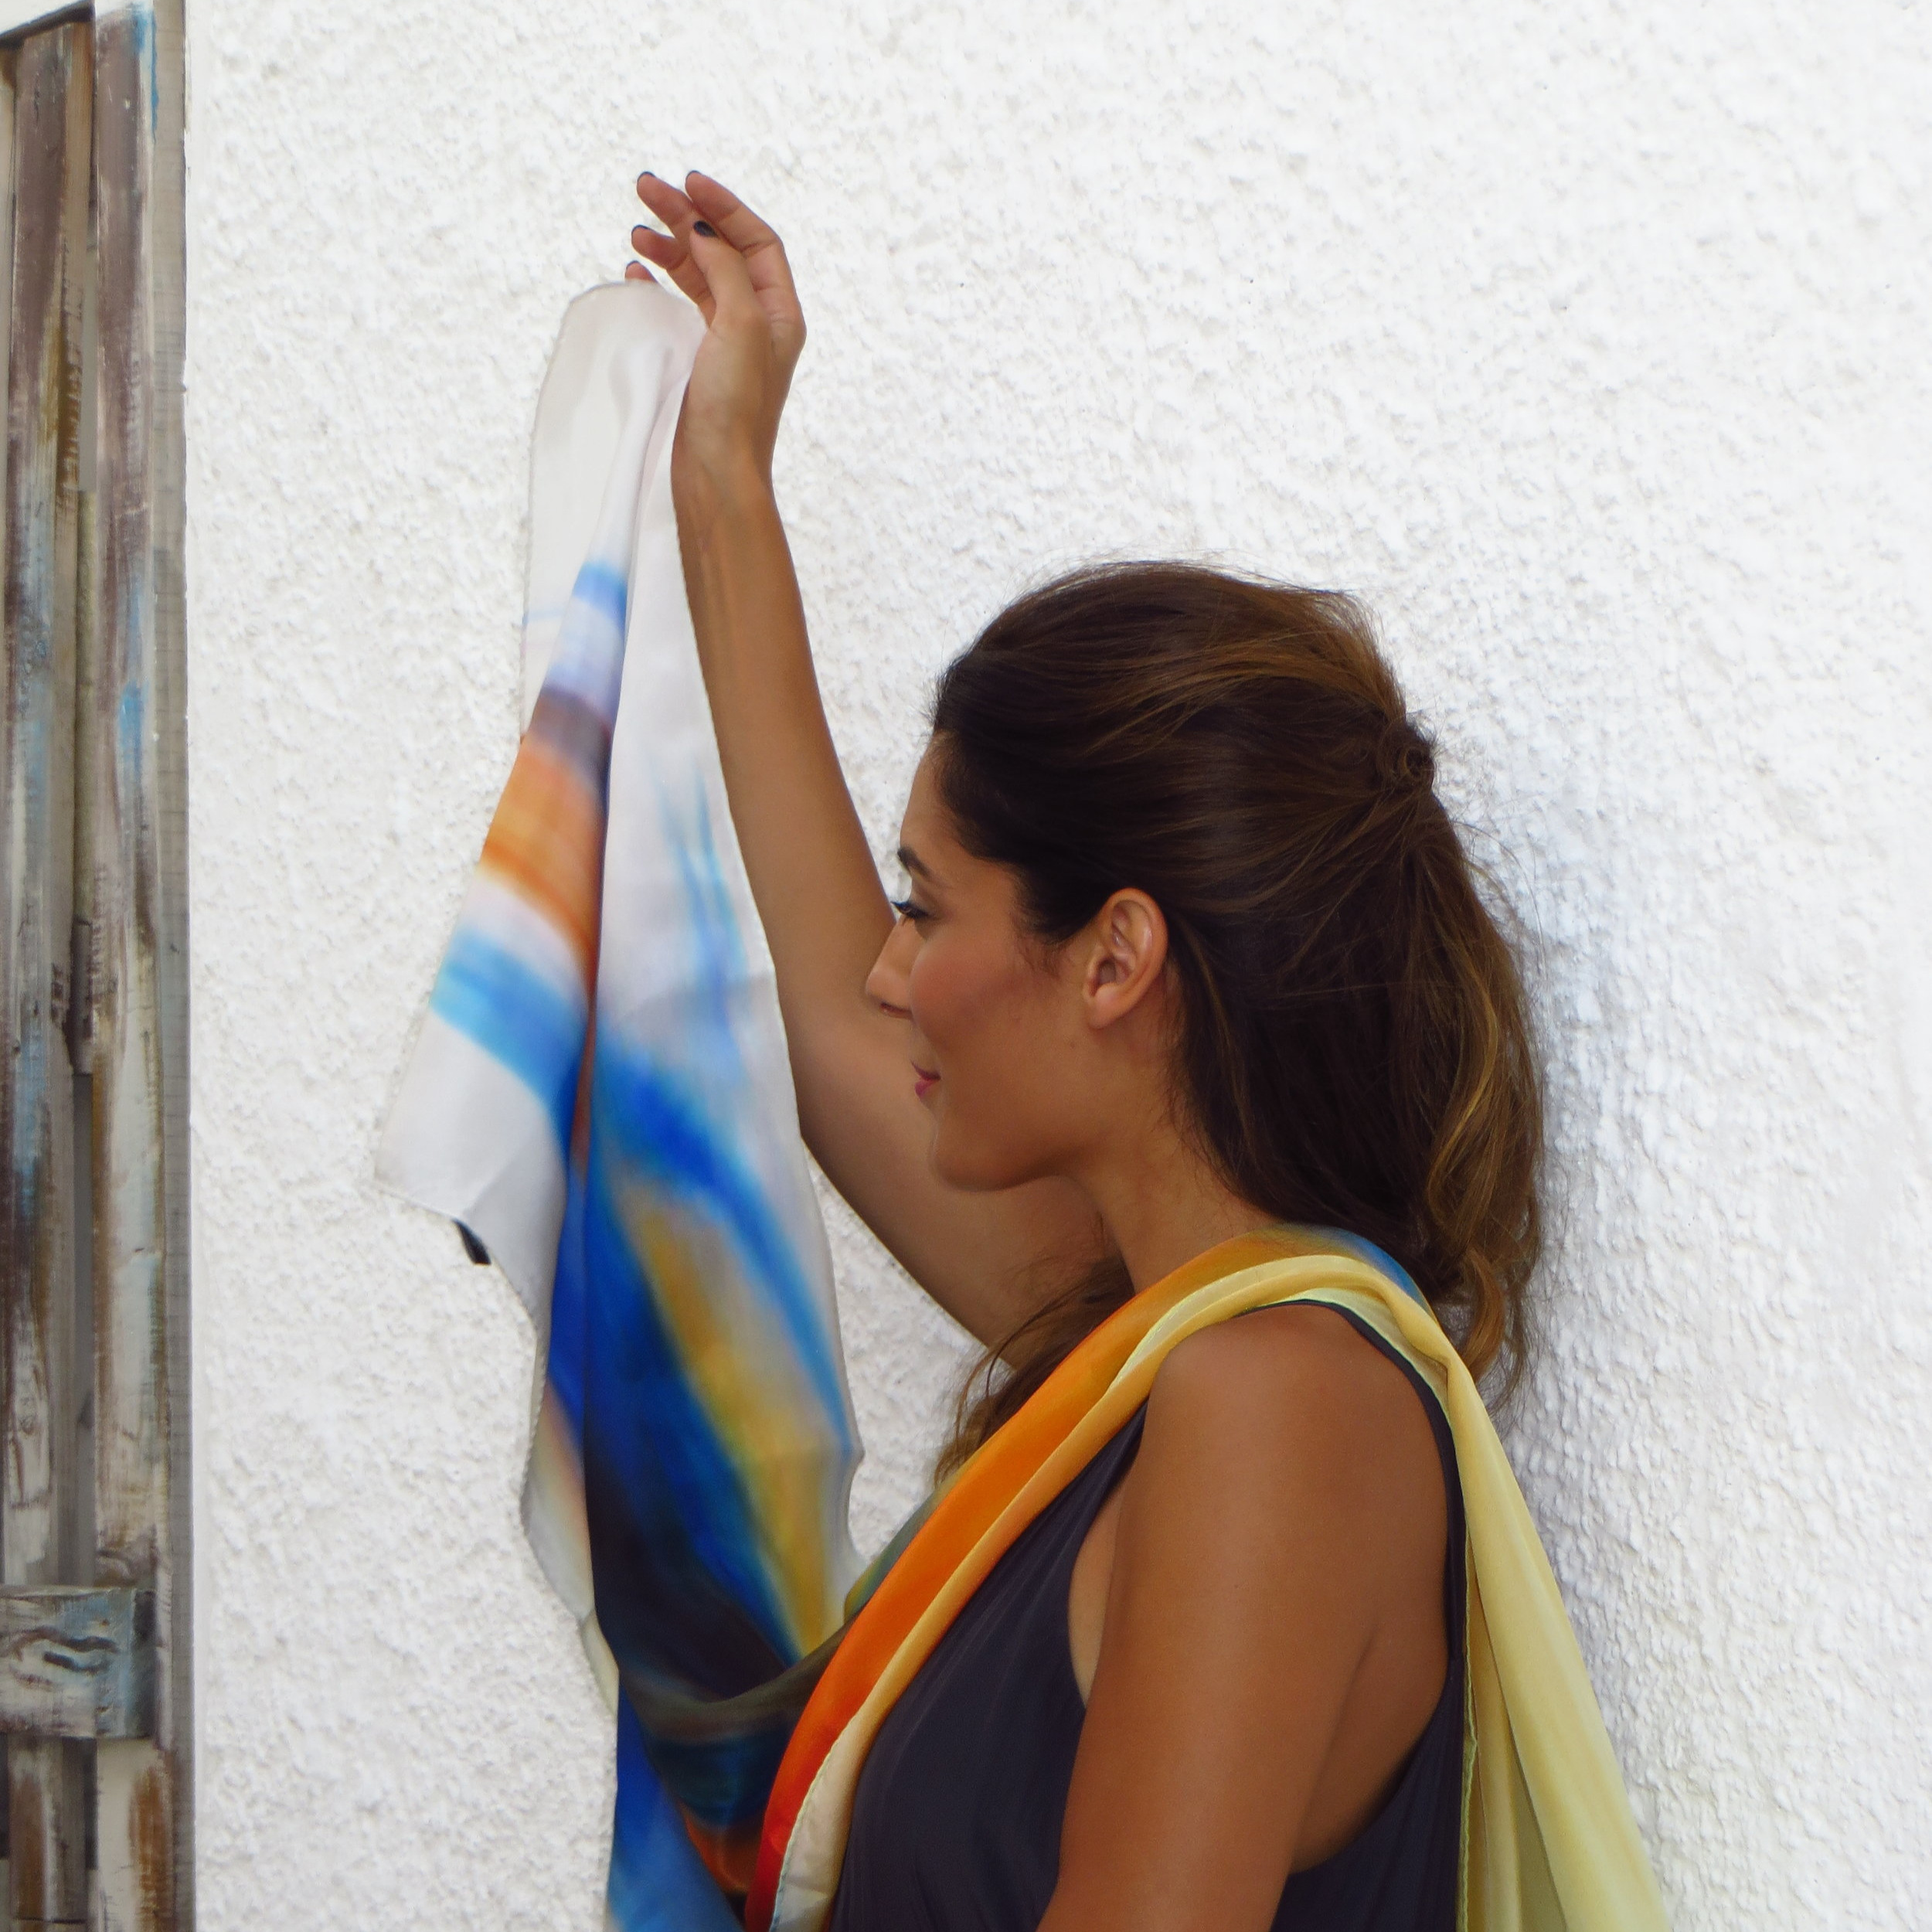 From our photoshoot in amazing Naxos - wonderful artist  Melina Koan  with our  Jet .